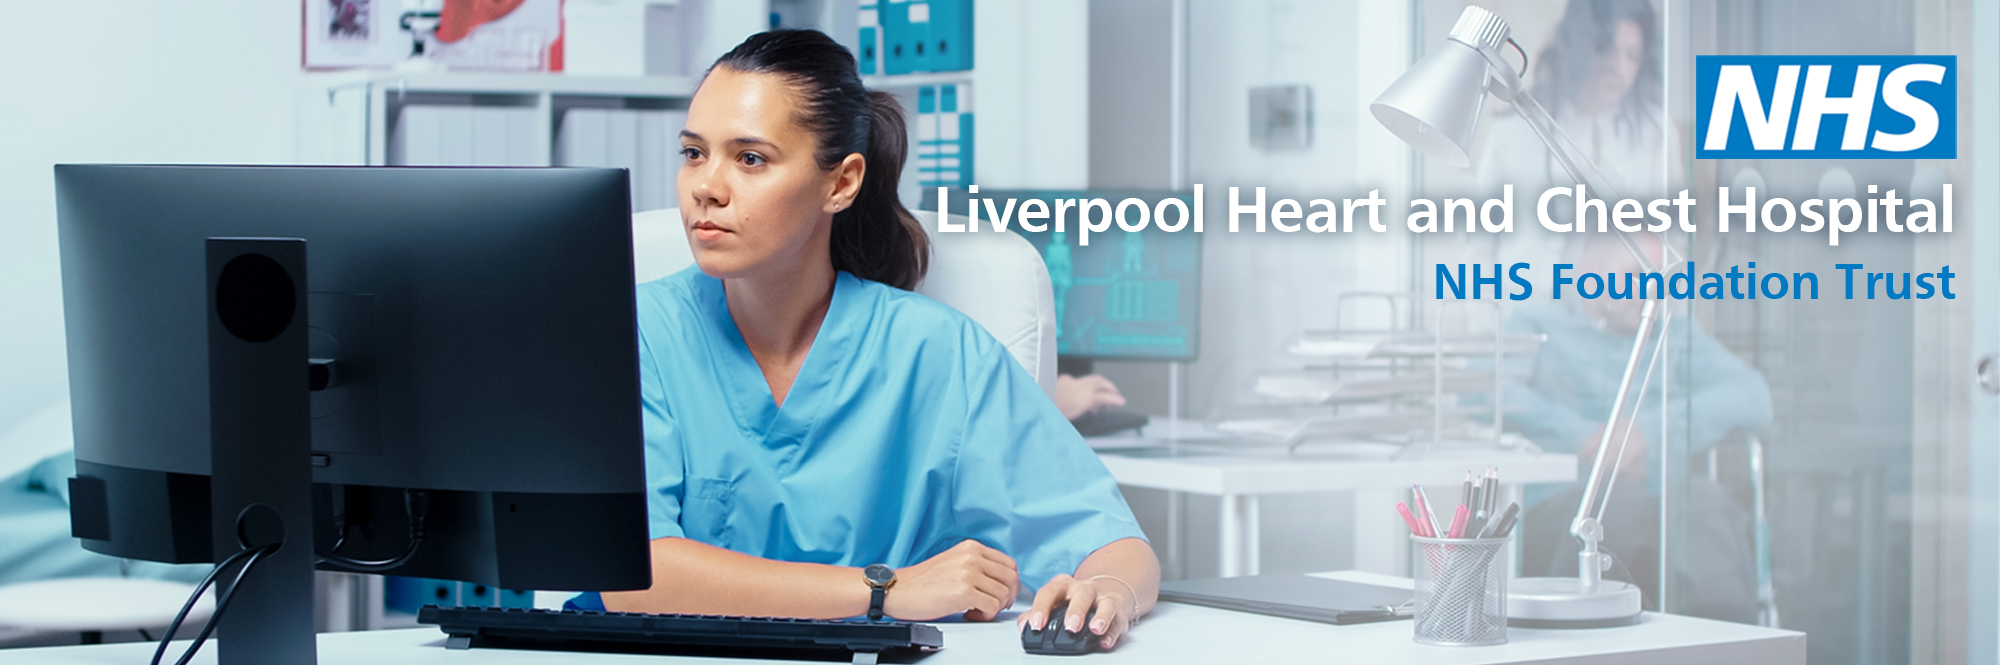 Video interviews for ICU, Cardiac and Cardiothoracic nurses – Liverpool Heart and Chest Hospital NHS Foundation Trust (LHCH)